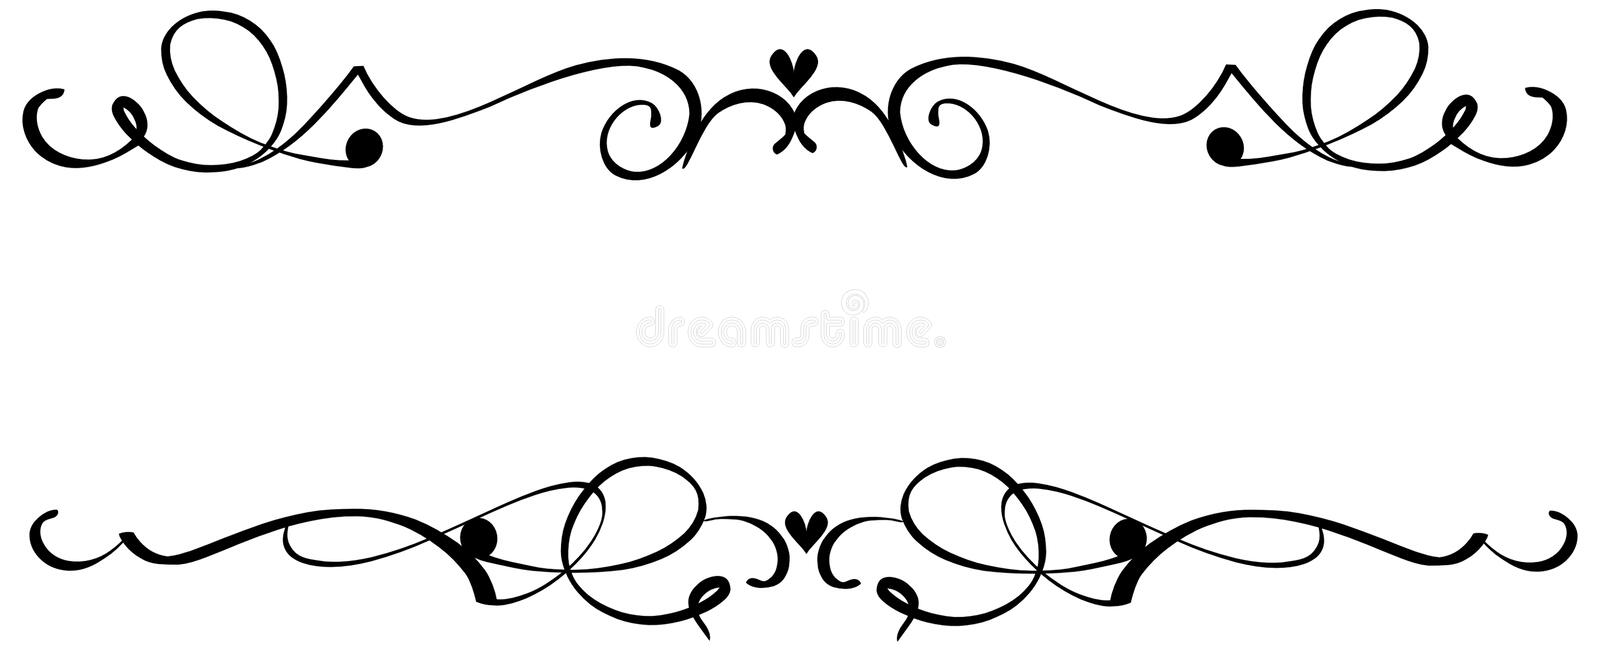 heart scroll gecce tackletarts co rh gecce tackletarts co free clip art scroll lines free clipart scrolling linesen-us